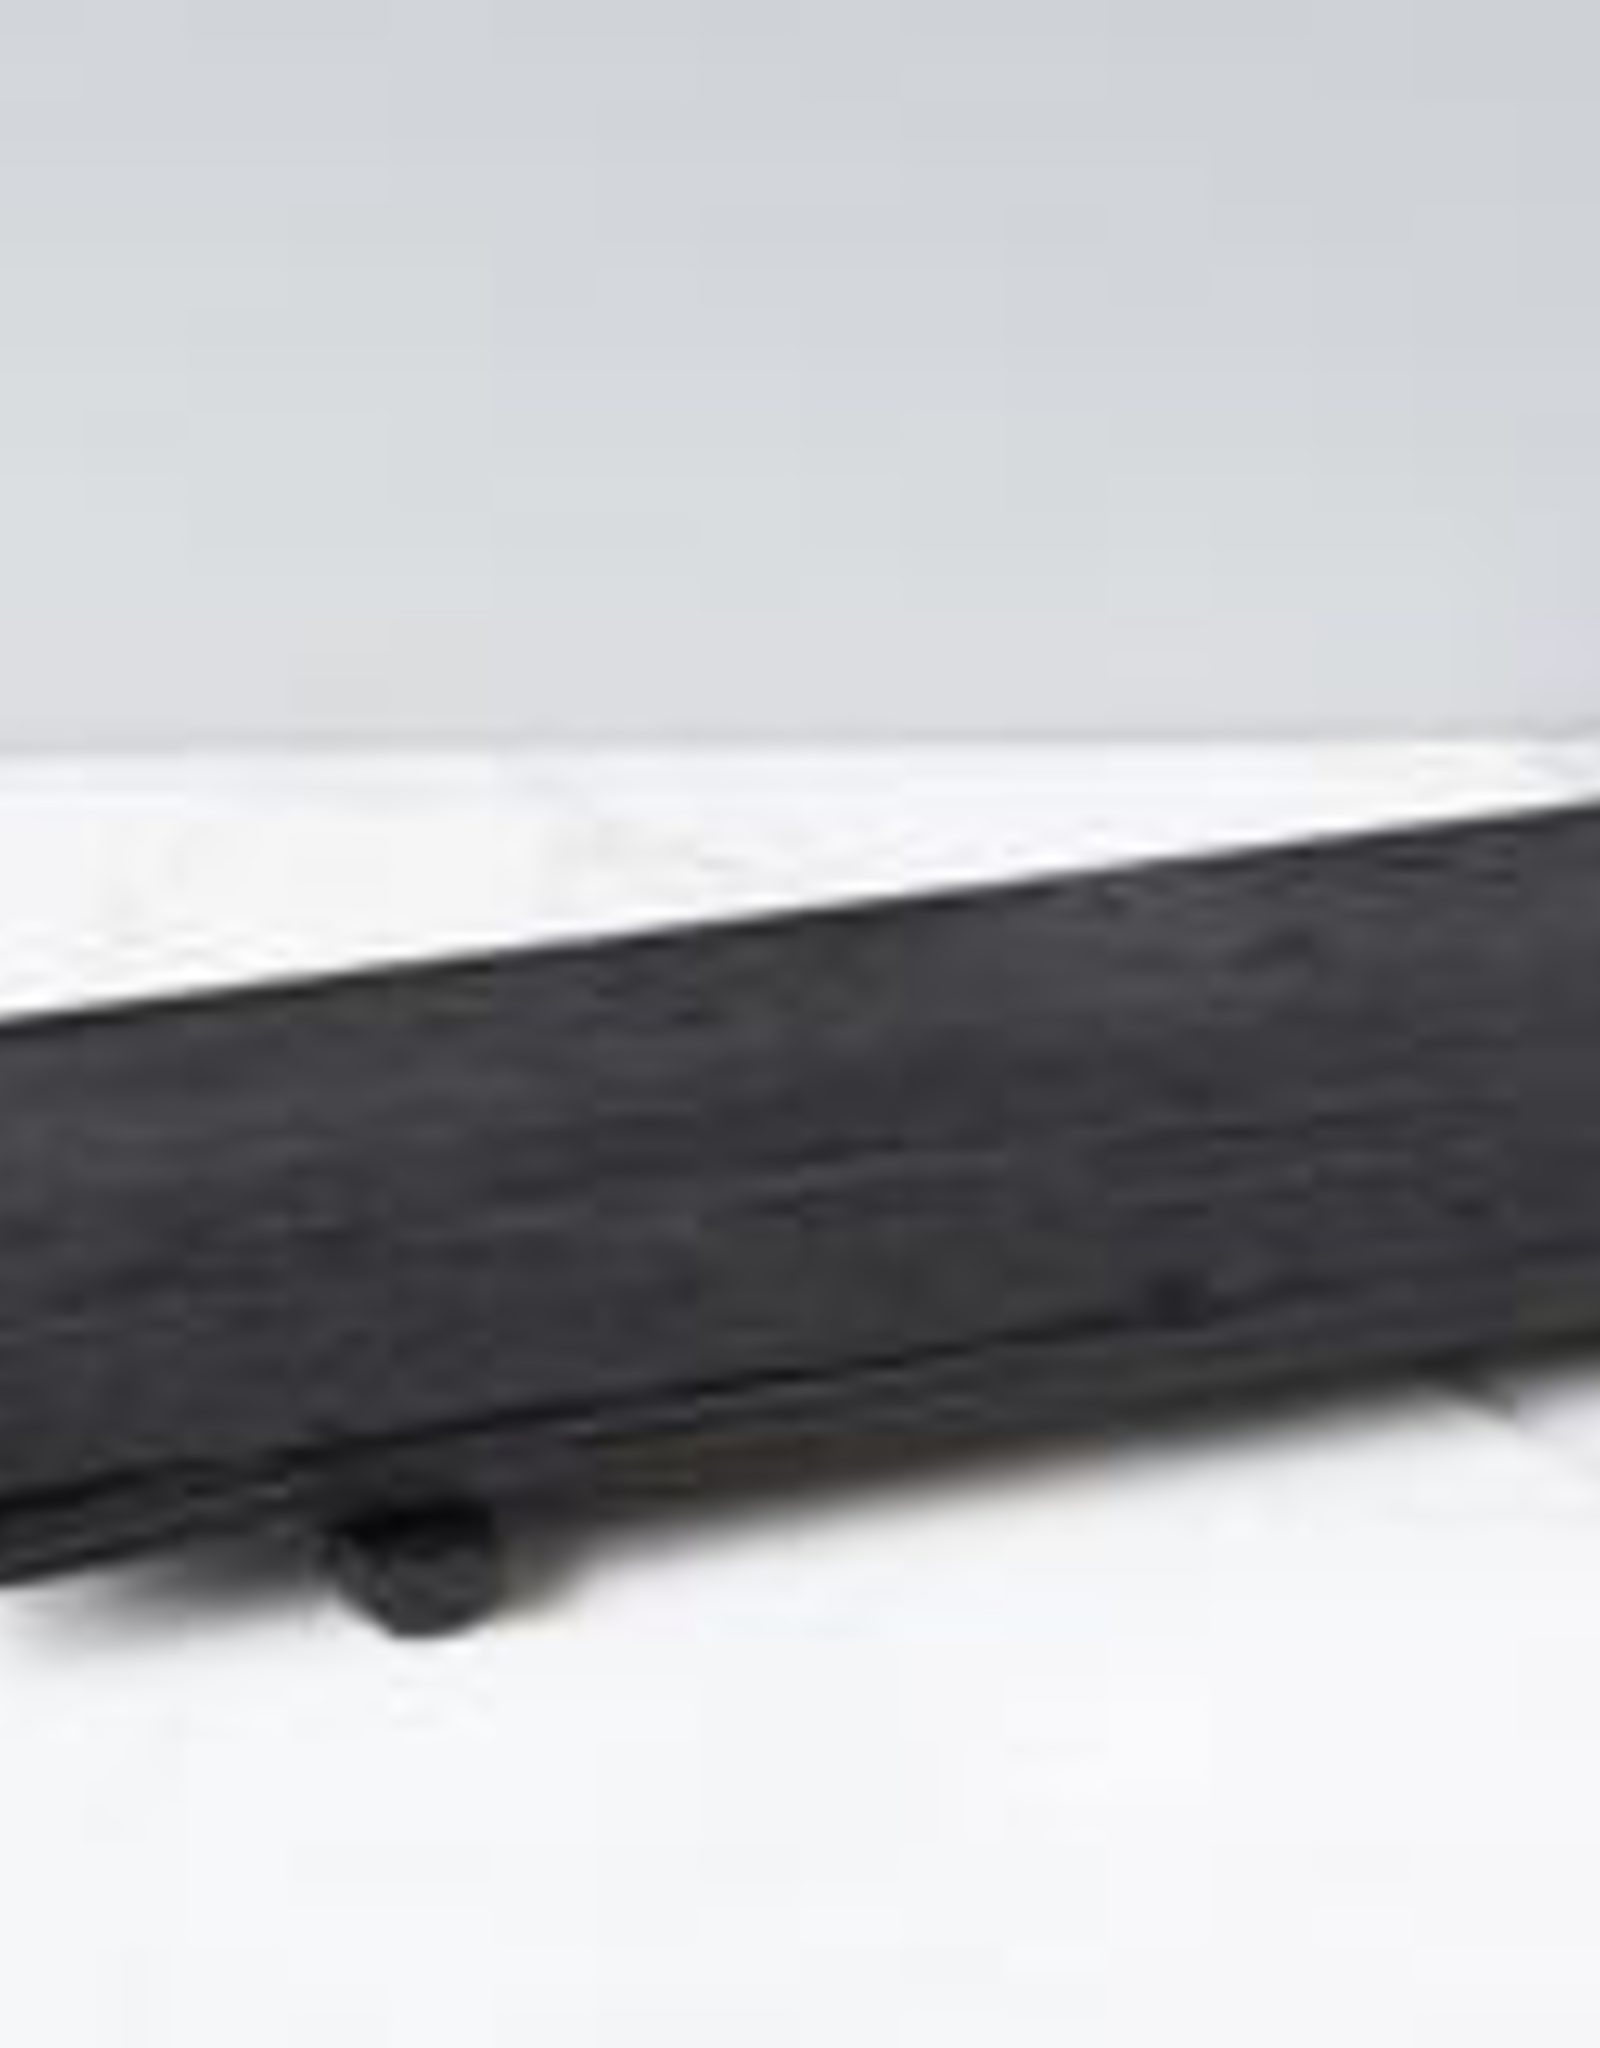 "Brassiere Footed Tray, Black Finish, L29"" W9"""